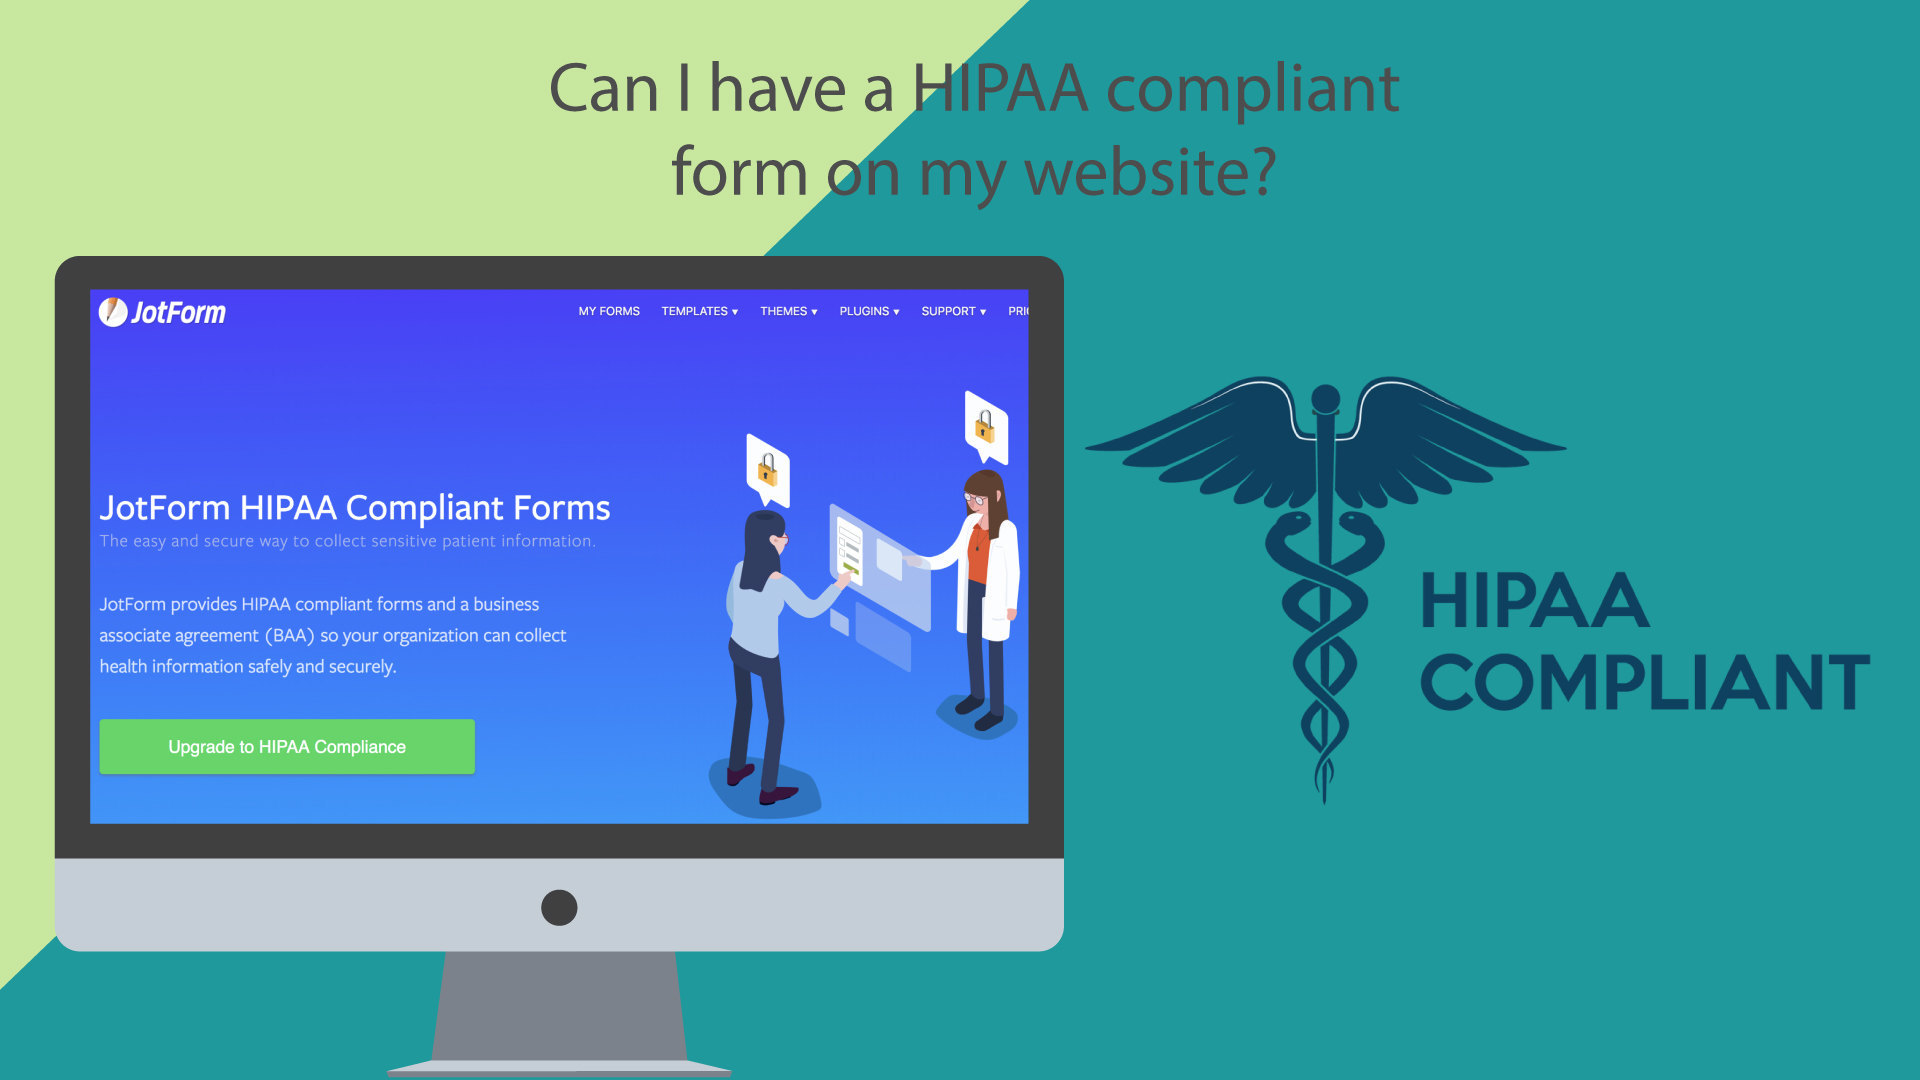 Can i have a hipaa compliant form